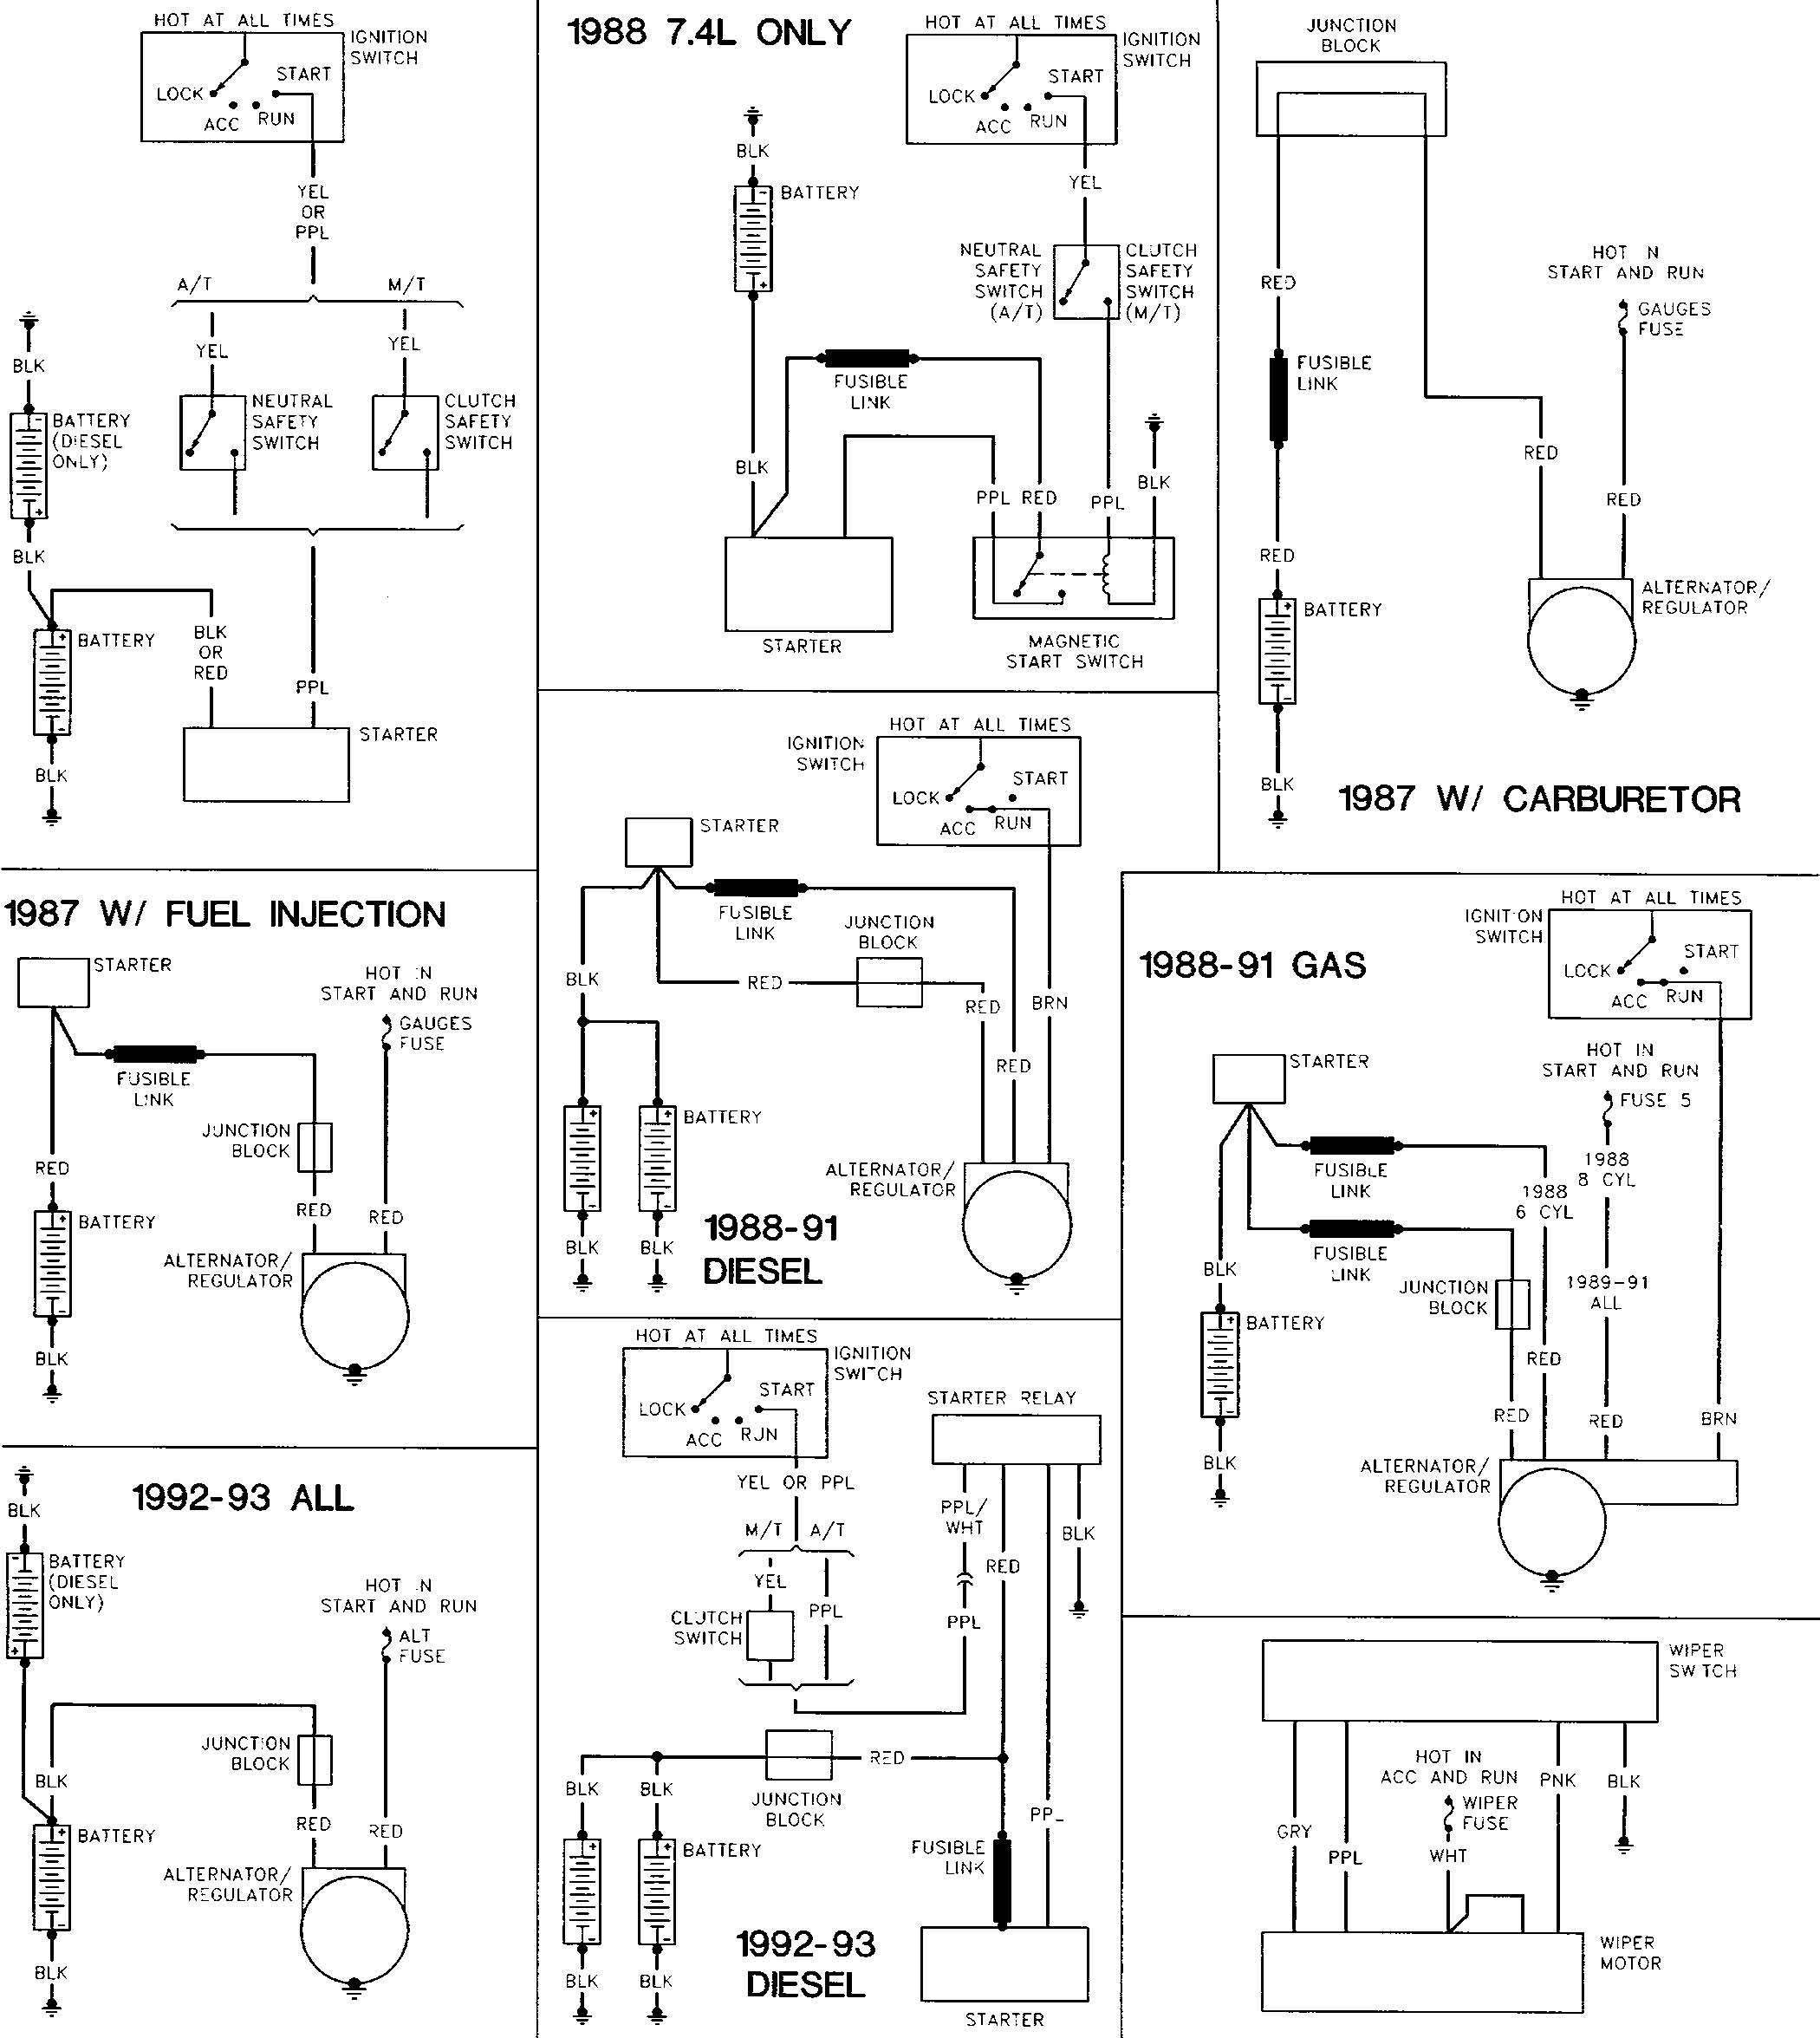 Diagram Fleetwood Rv Wiring Diagram Full Version Hd